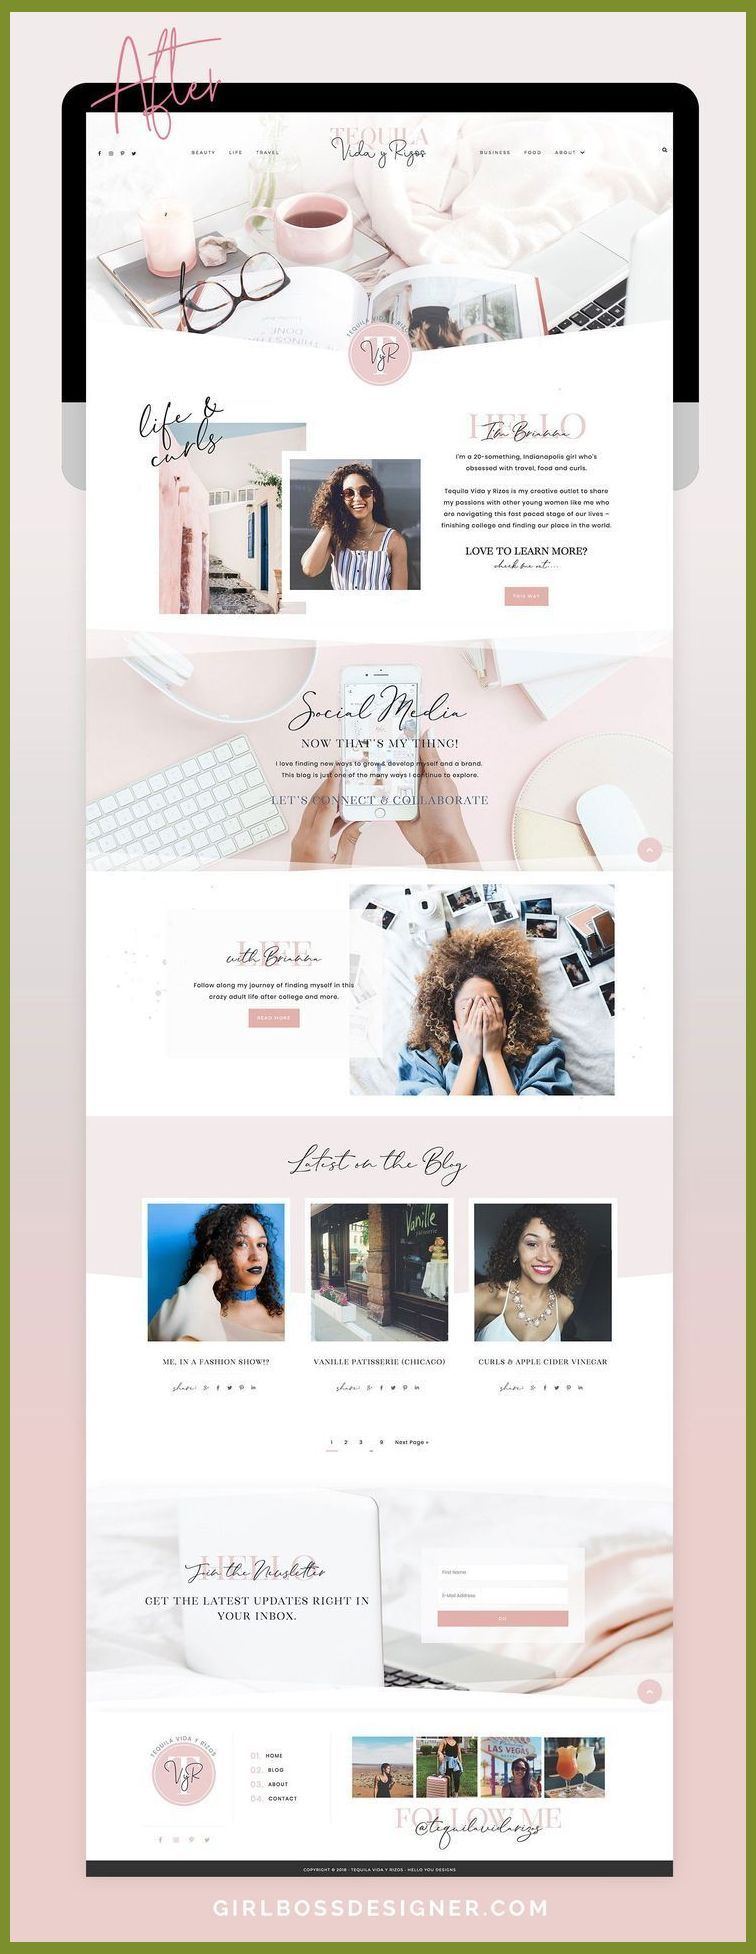 A Compilation Of 9 Of The Best Site Layout Examples And Concepts In 2018 These Websites Are Al In 2020 Wordpress Blog Design Creative Web Design Simple Website Design